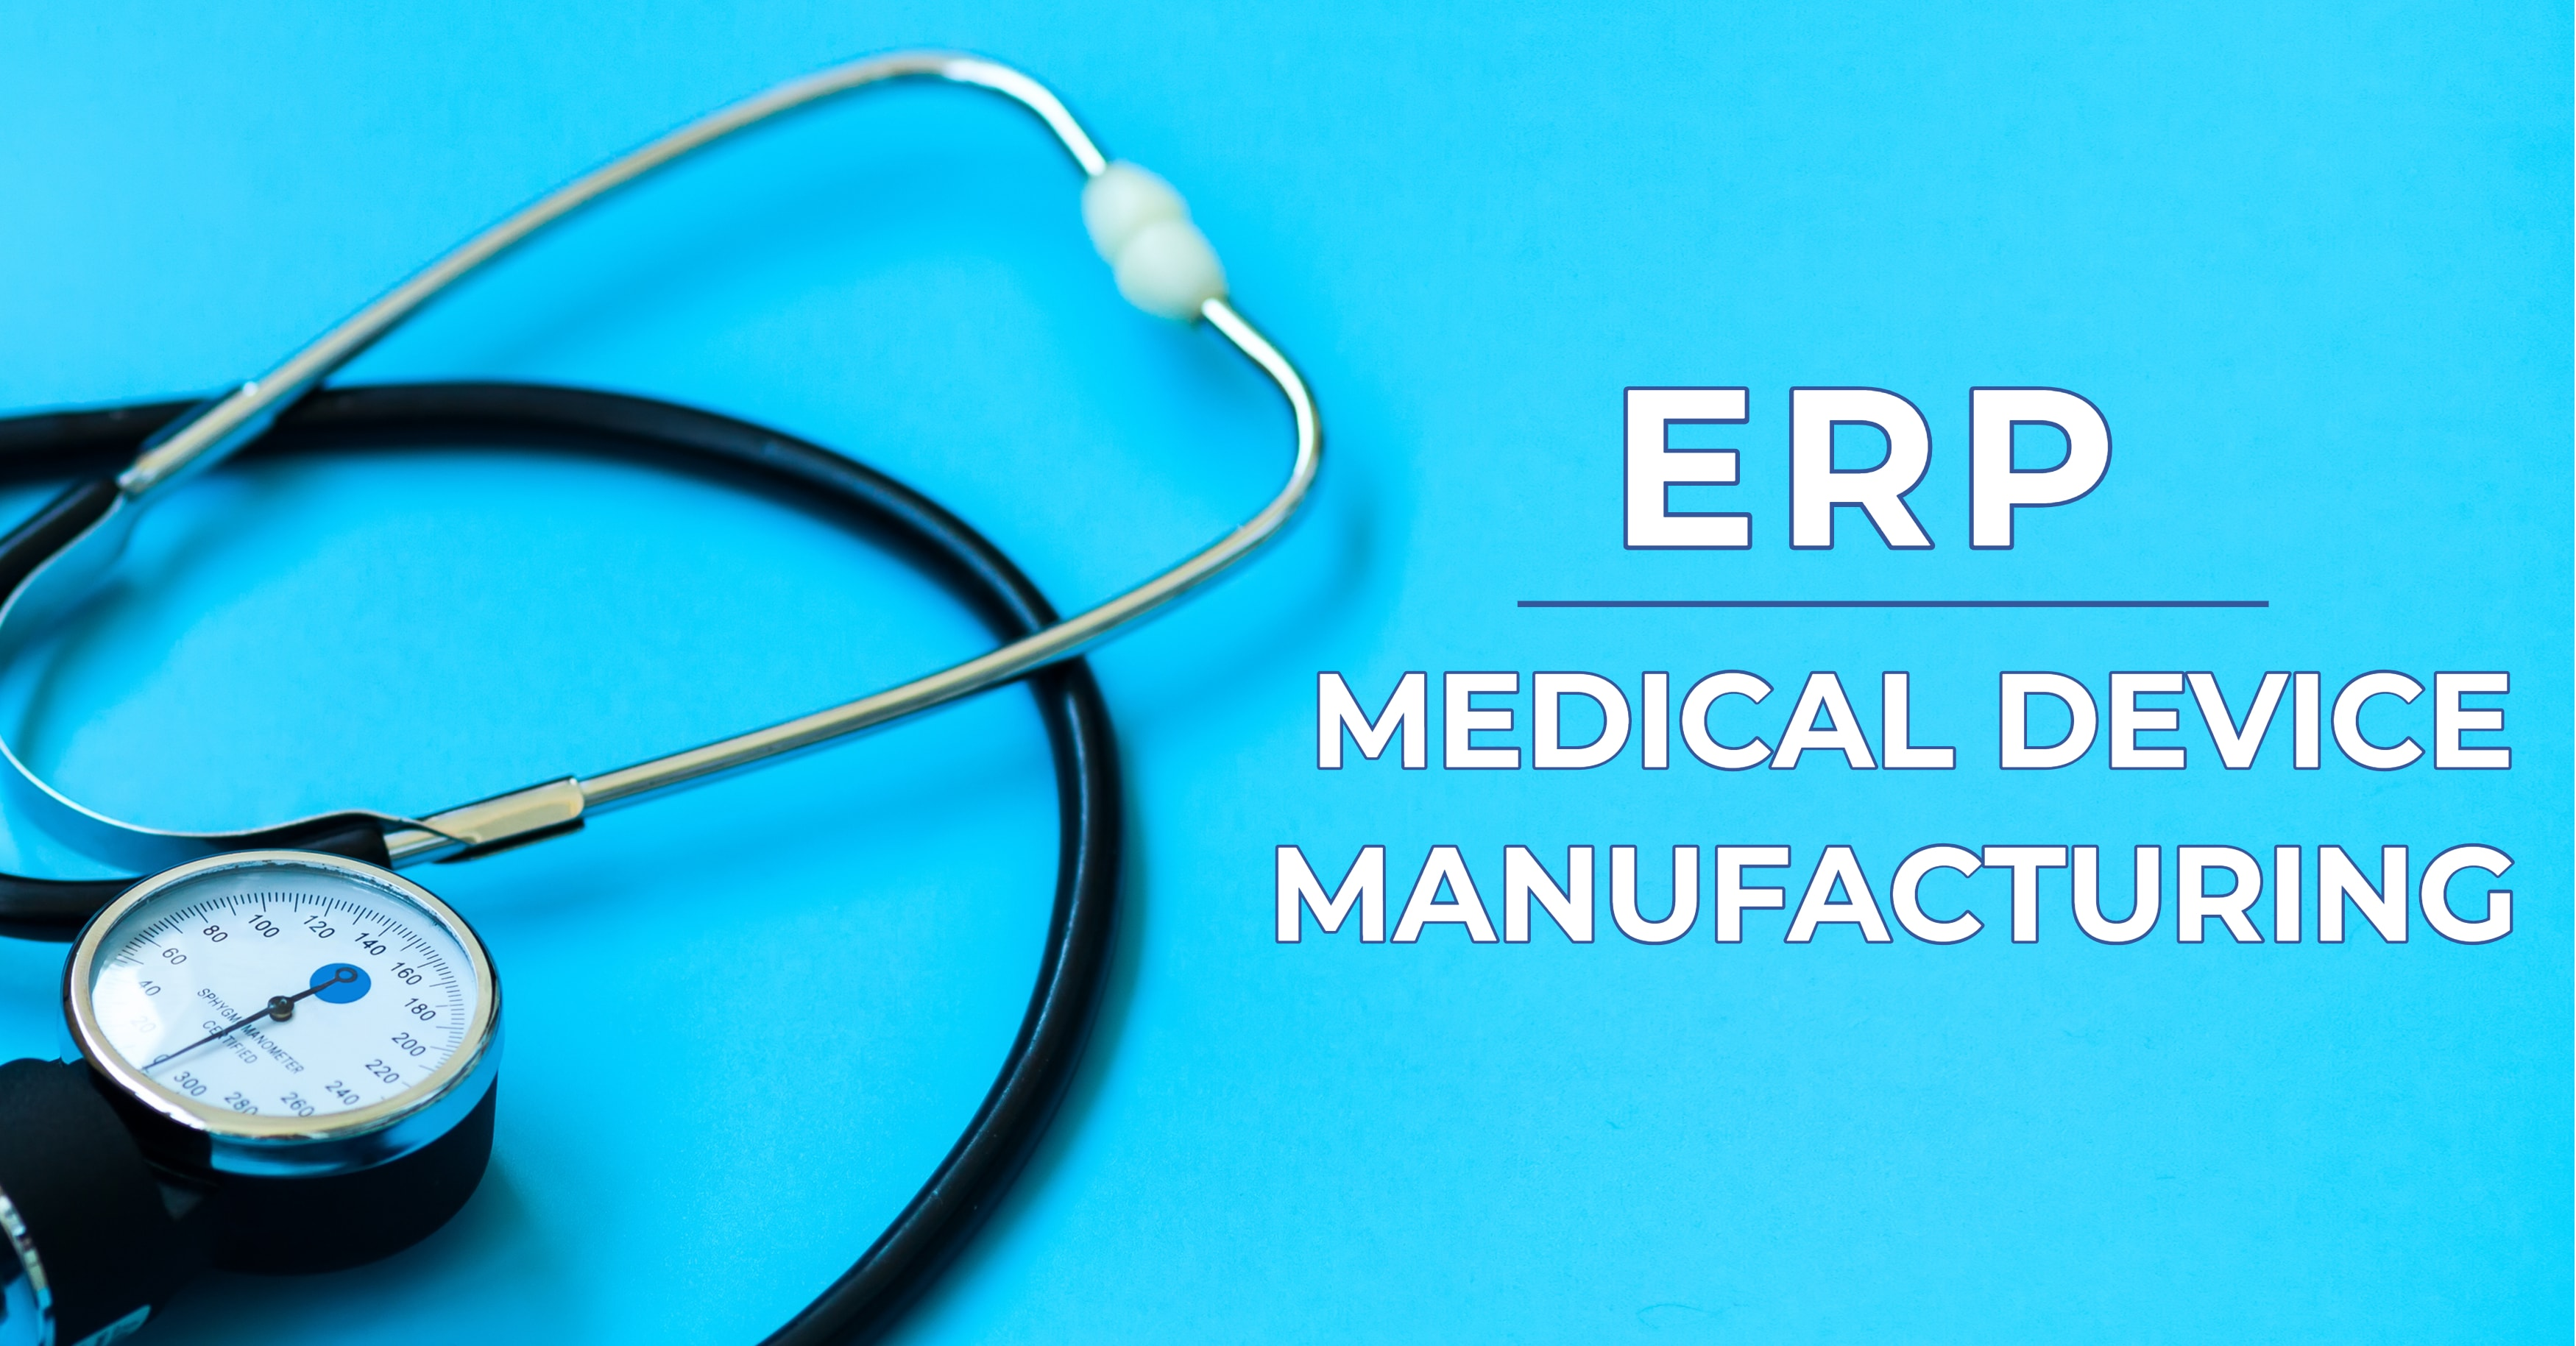 Key Benefits of ERP for Medical Device Manufacturers